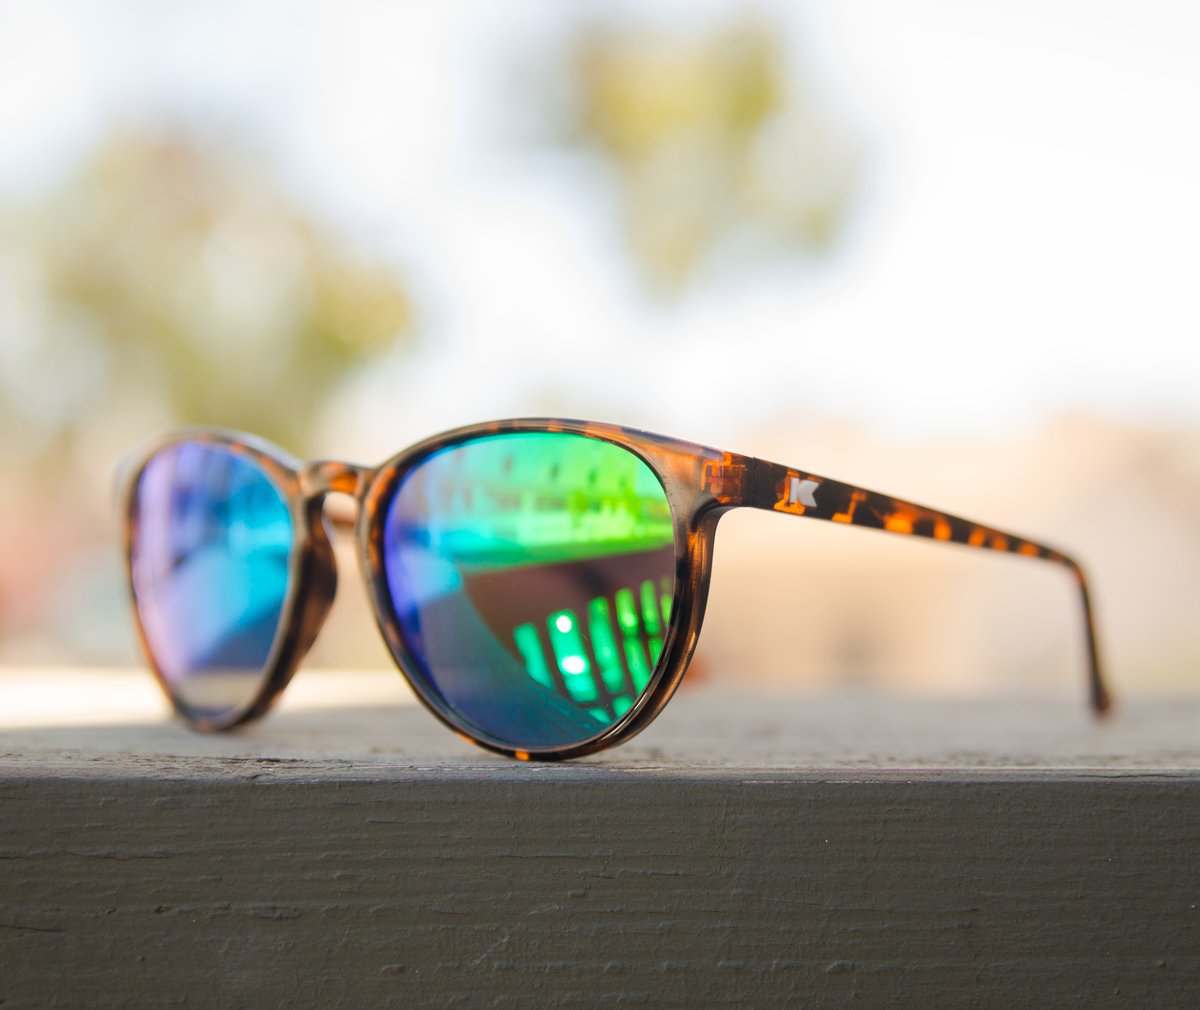 c65deb3d18 New colorway—Glossy tortoise shell   green moonshine Mai Tais with embedded  white K logos available for only  20 (polarized option for  25).